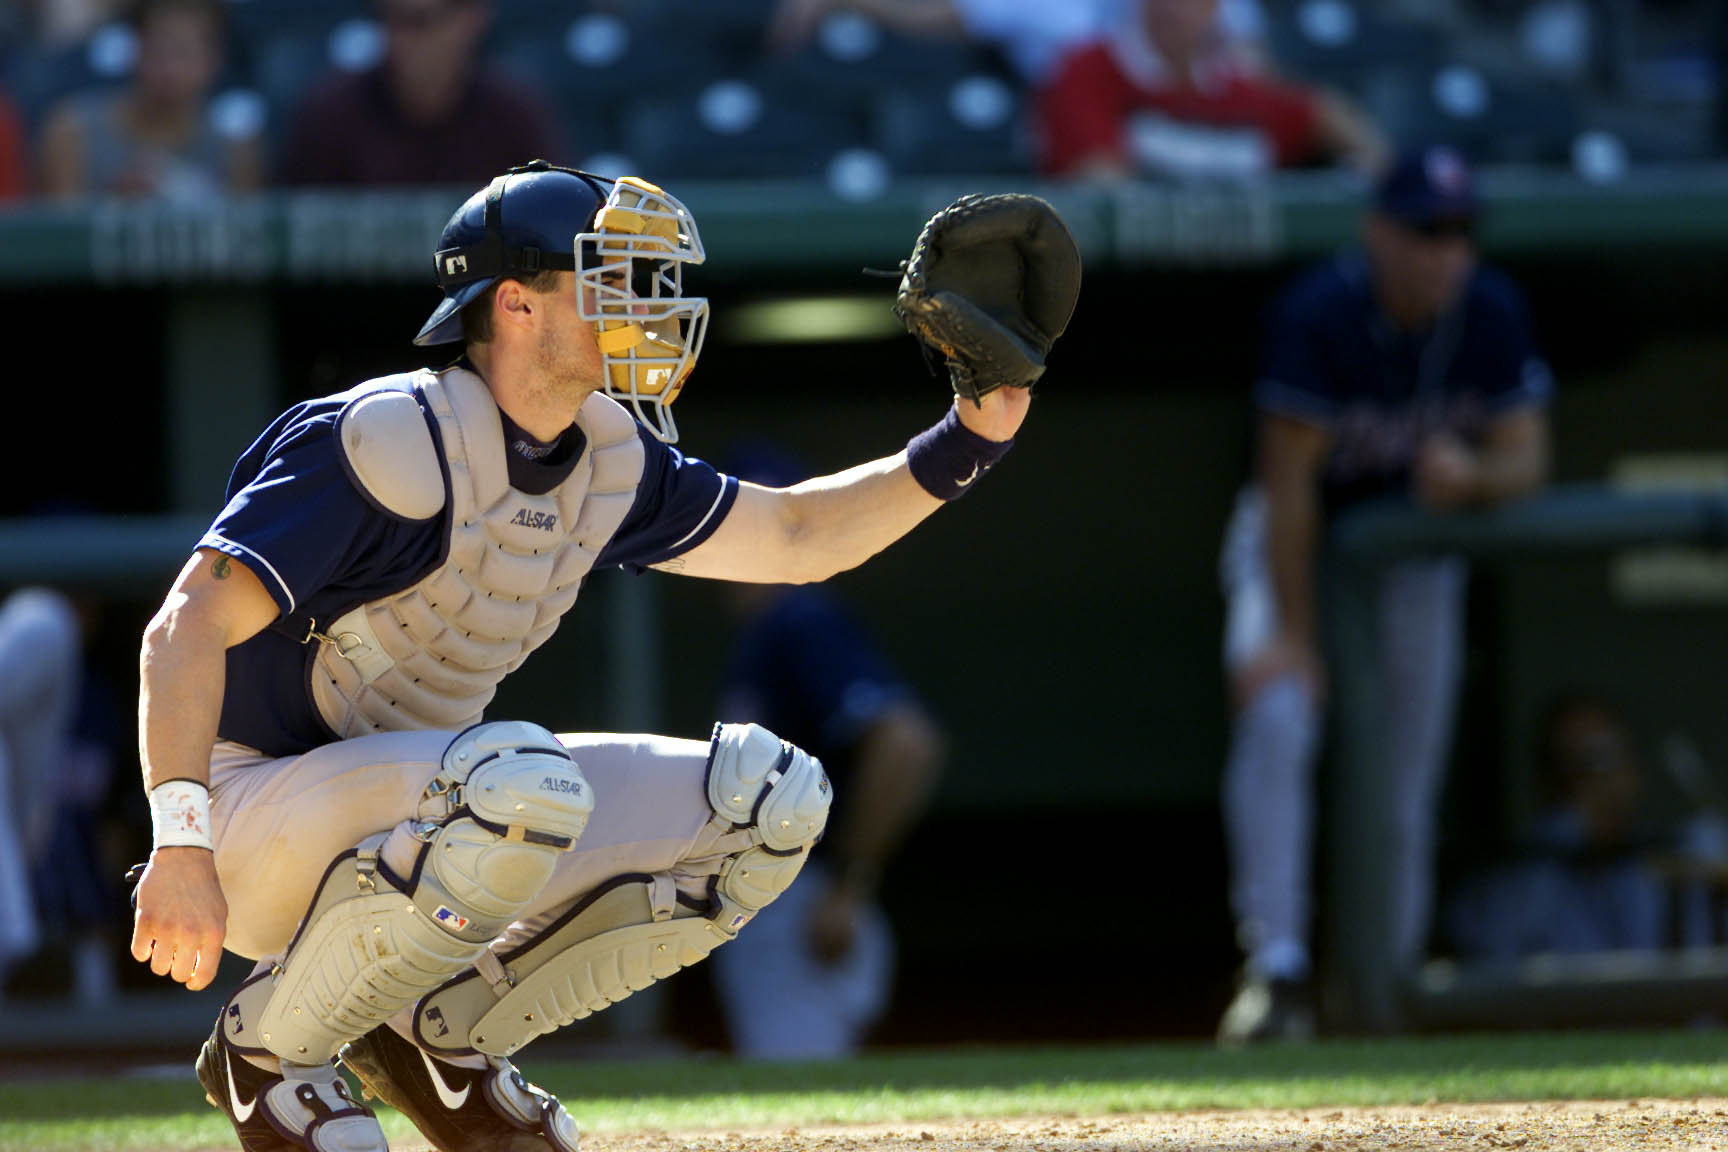 27 Sep 2001: Catcher Ben Davis of the San Diego padres aims for a save against the Colorado Rockies during the game at Coors Field in Denver, Colorado. The Rockies won 13-9 . DIGITAL IMAGE. Mandatory Credit: Brian Bahr/Allsport